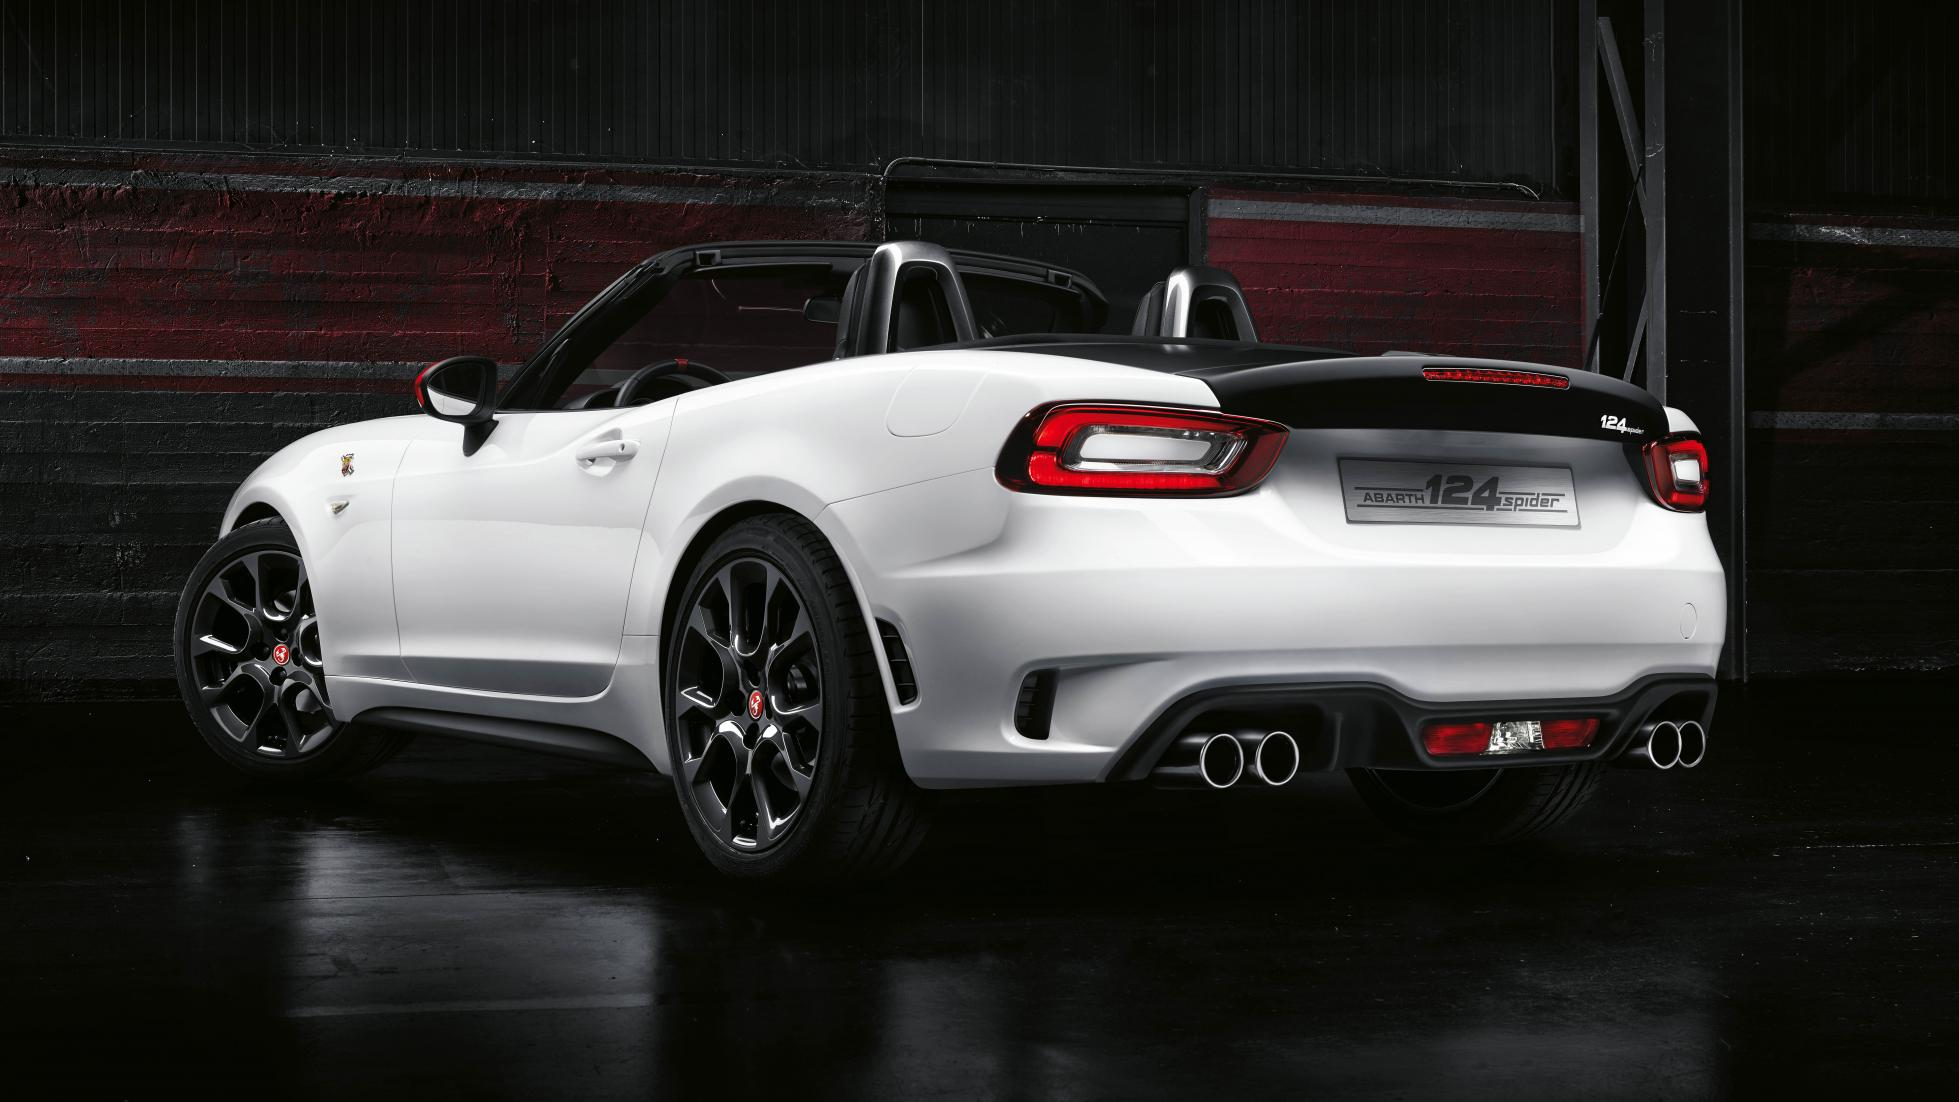 Fiat Abarth 124 Spider Wallpaper  Full HD Pictures